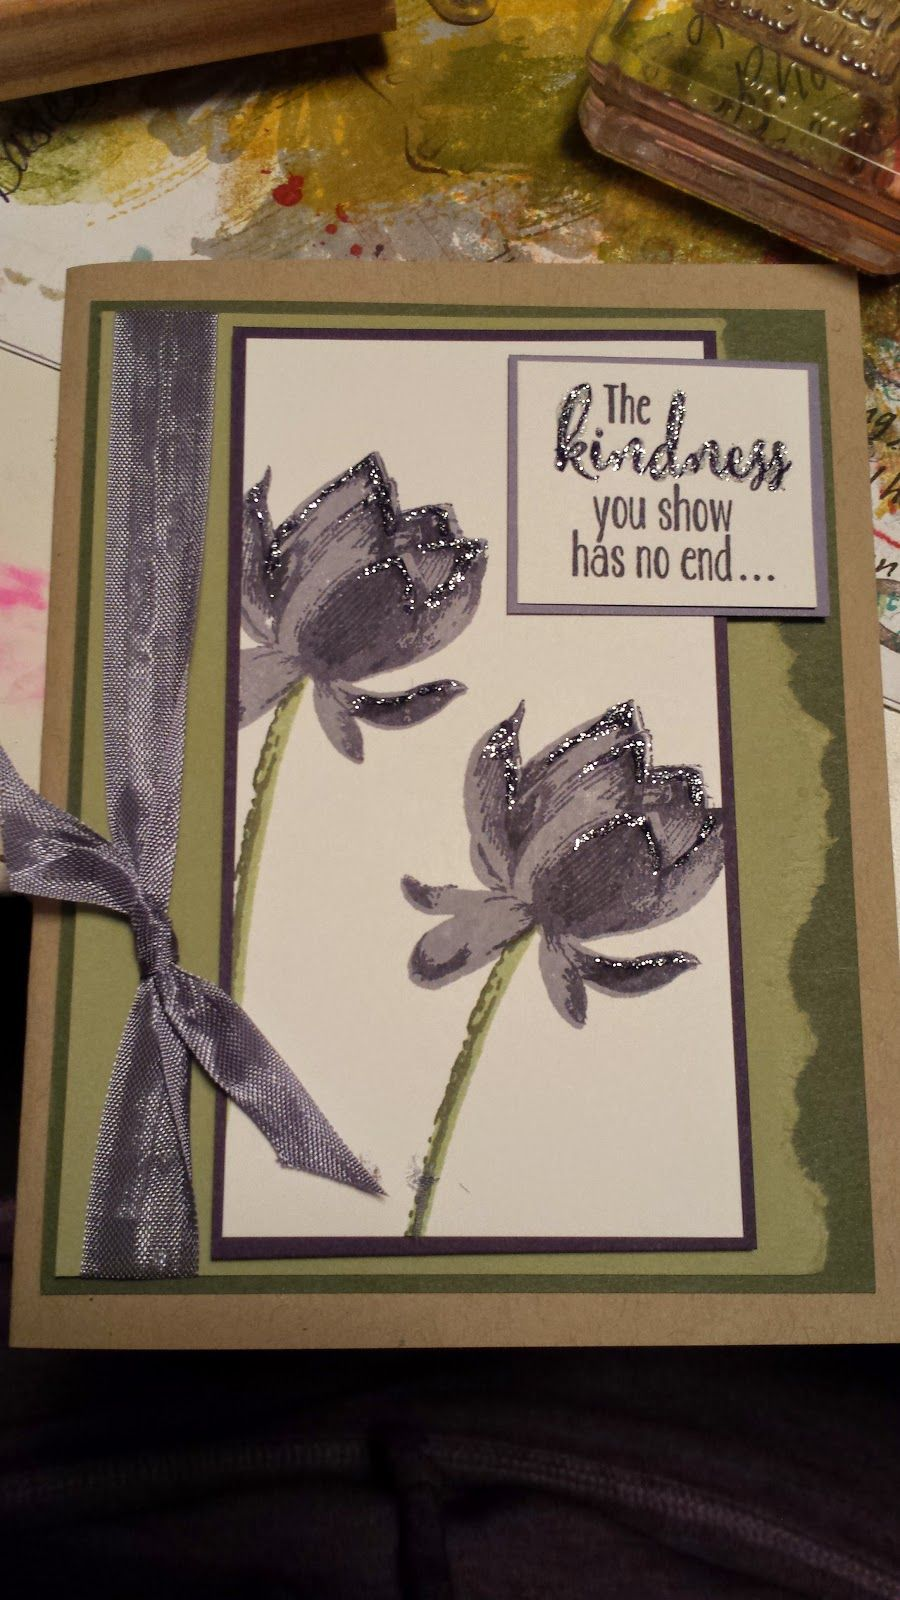 Check out the New Lotus Blossom stamp set from Stampin' Up! Get it for free during Sale A Braiton!